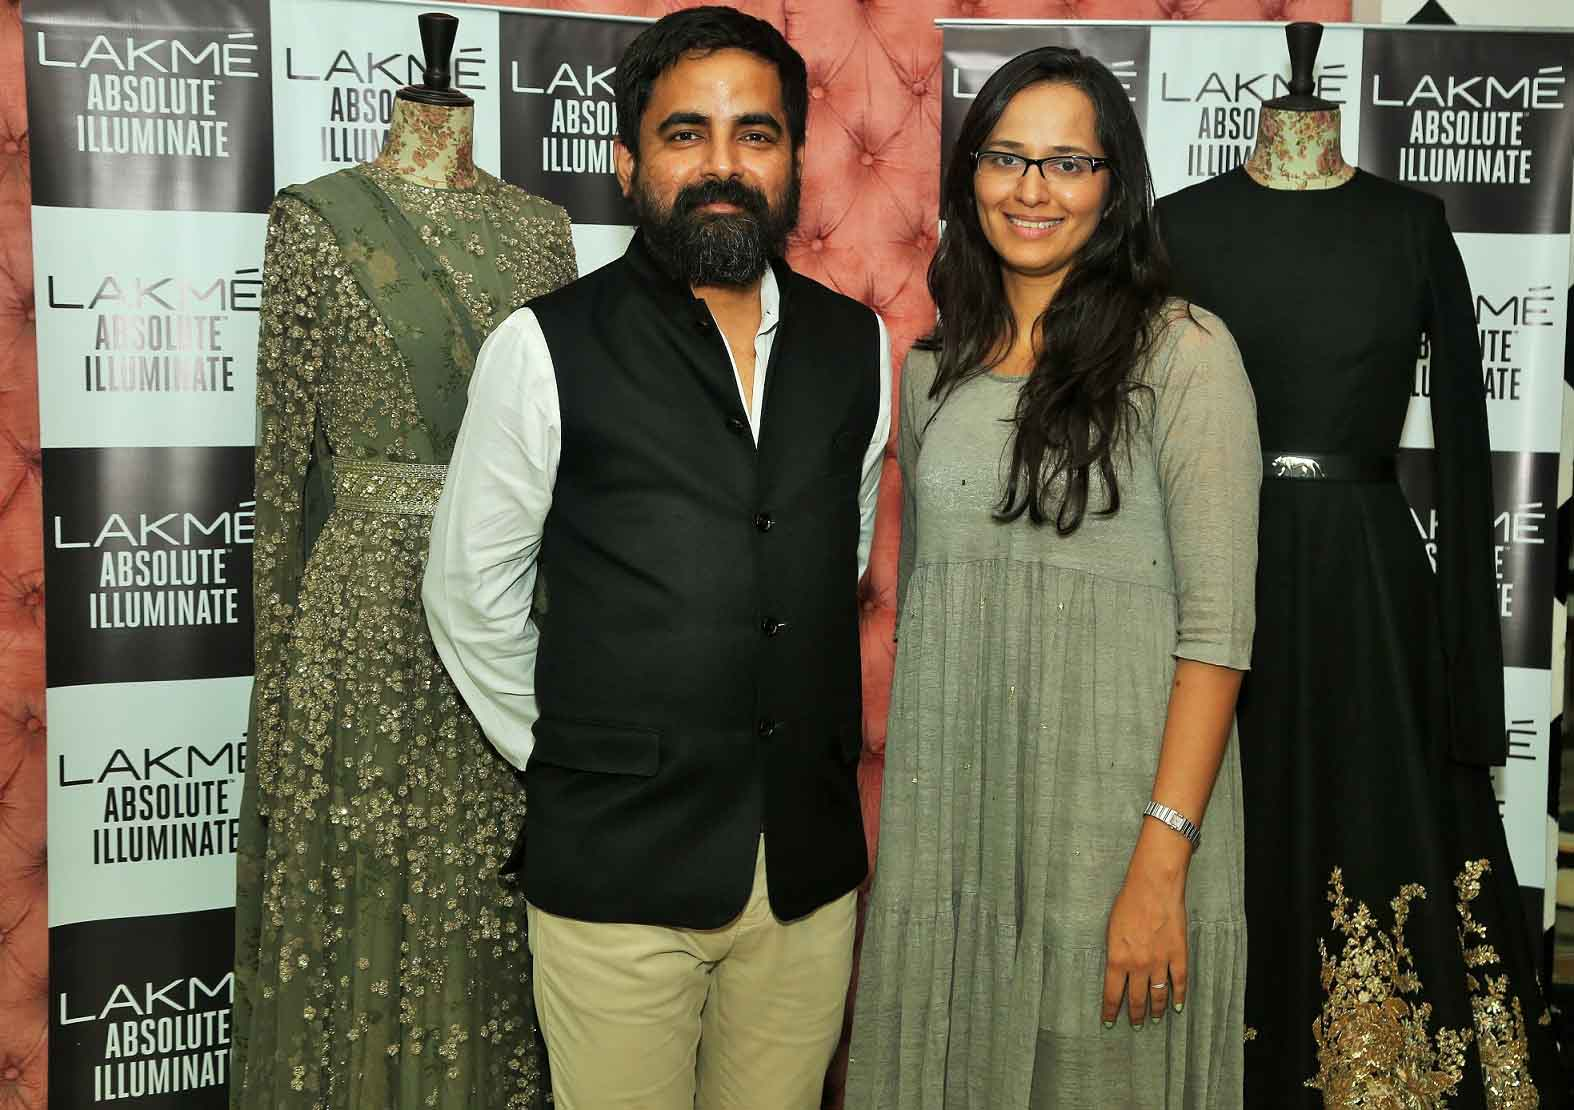 Purnima Lamba, Head of Innovations Lakme, with Lakme Grand Finale Designer Sabyasachi Mukherjee, Lakme Illuminate with Sabyasachi Mukherjee, Lakme Fashion Week Winter Festive 2016, Fashion, Runway